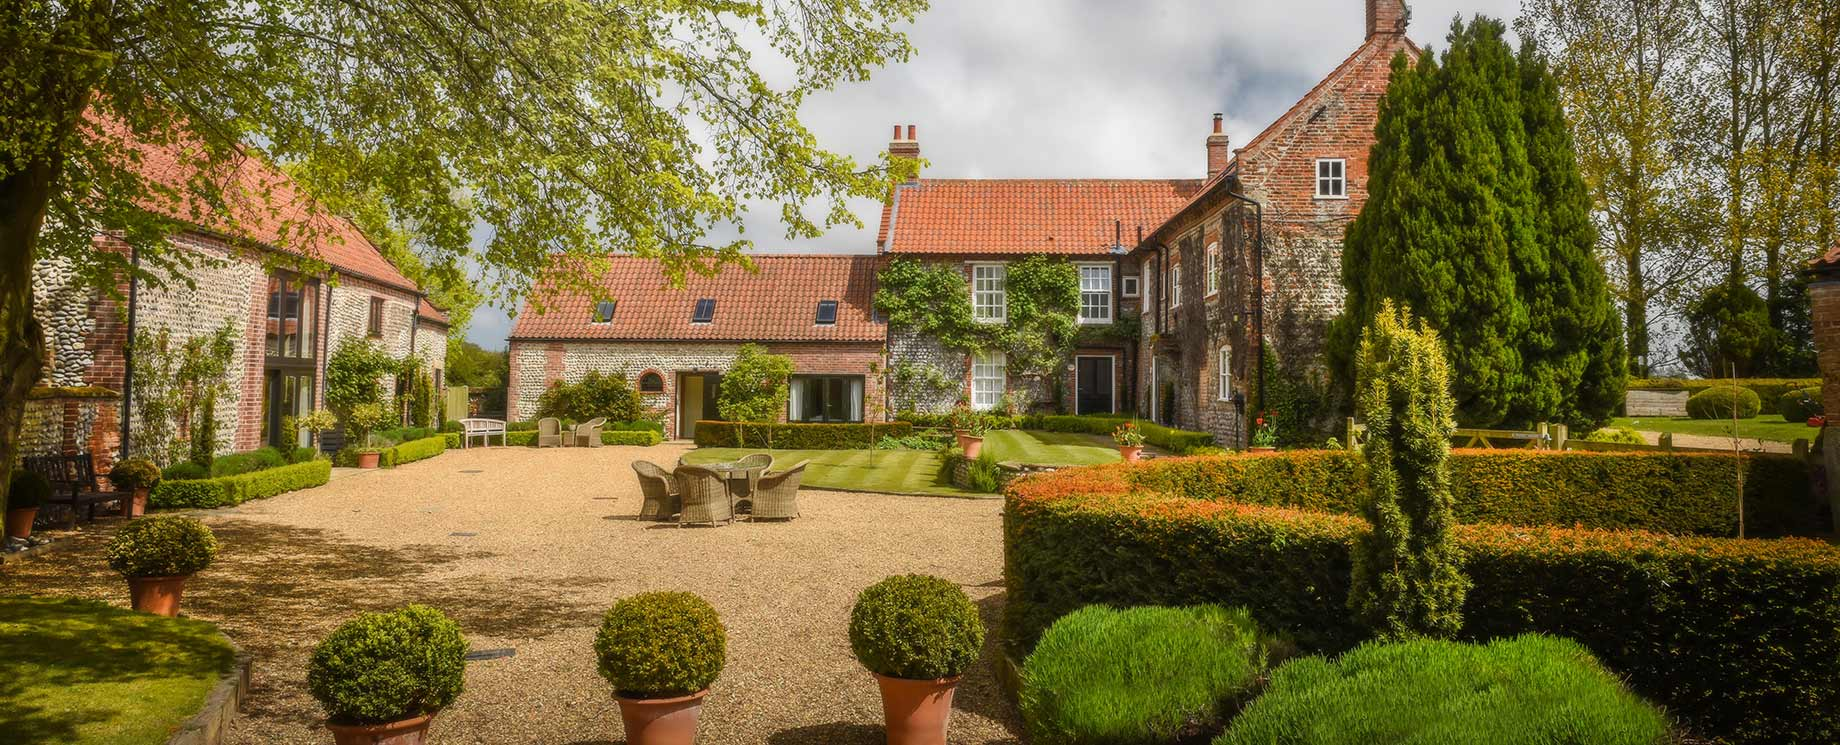 Prime Rookery Farm Holiday Accommodation Norfolk Luxury Barns Download Free Architecture Designs Embacsunscenecom